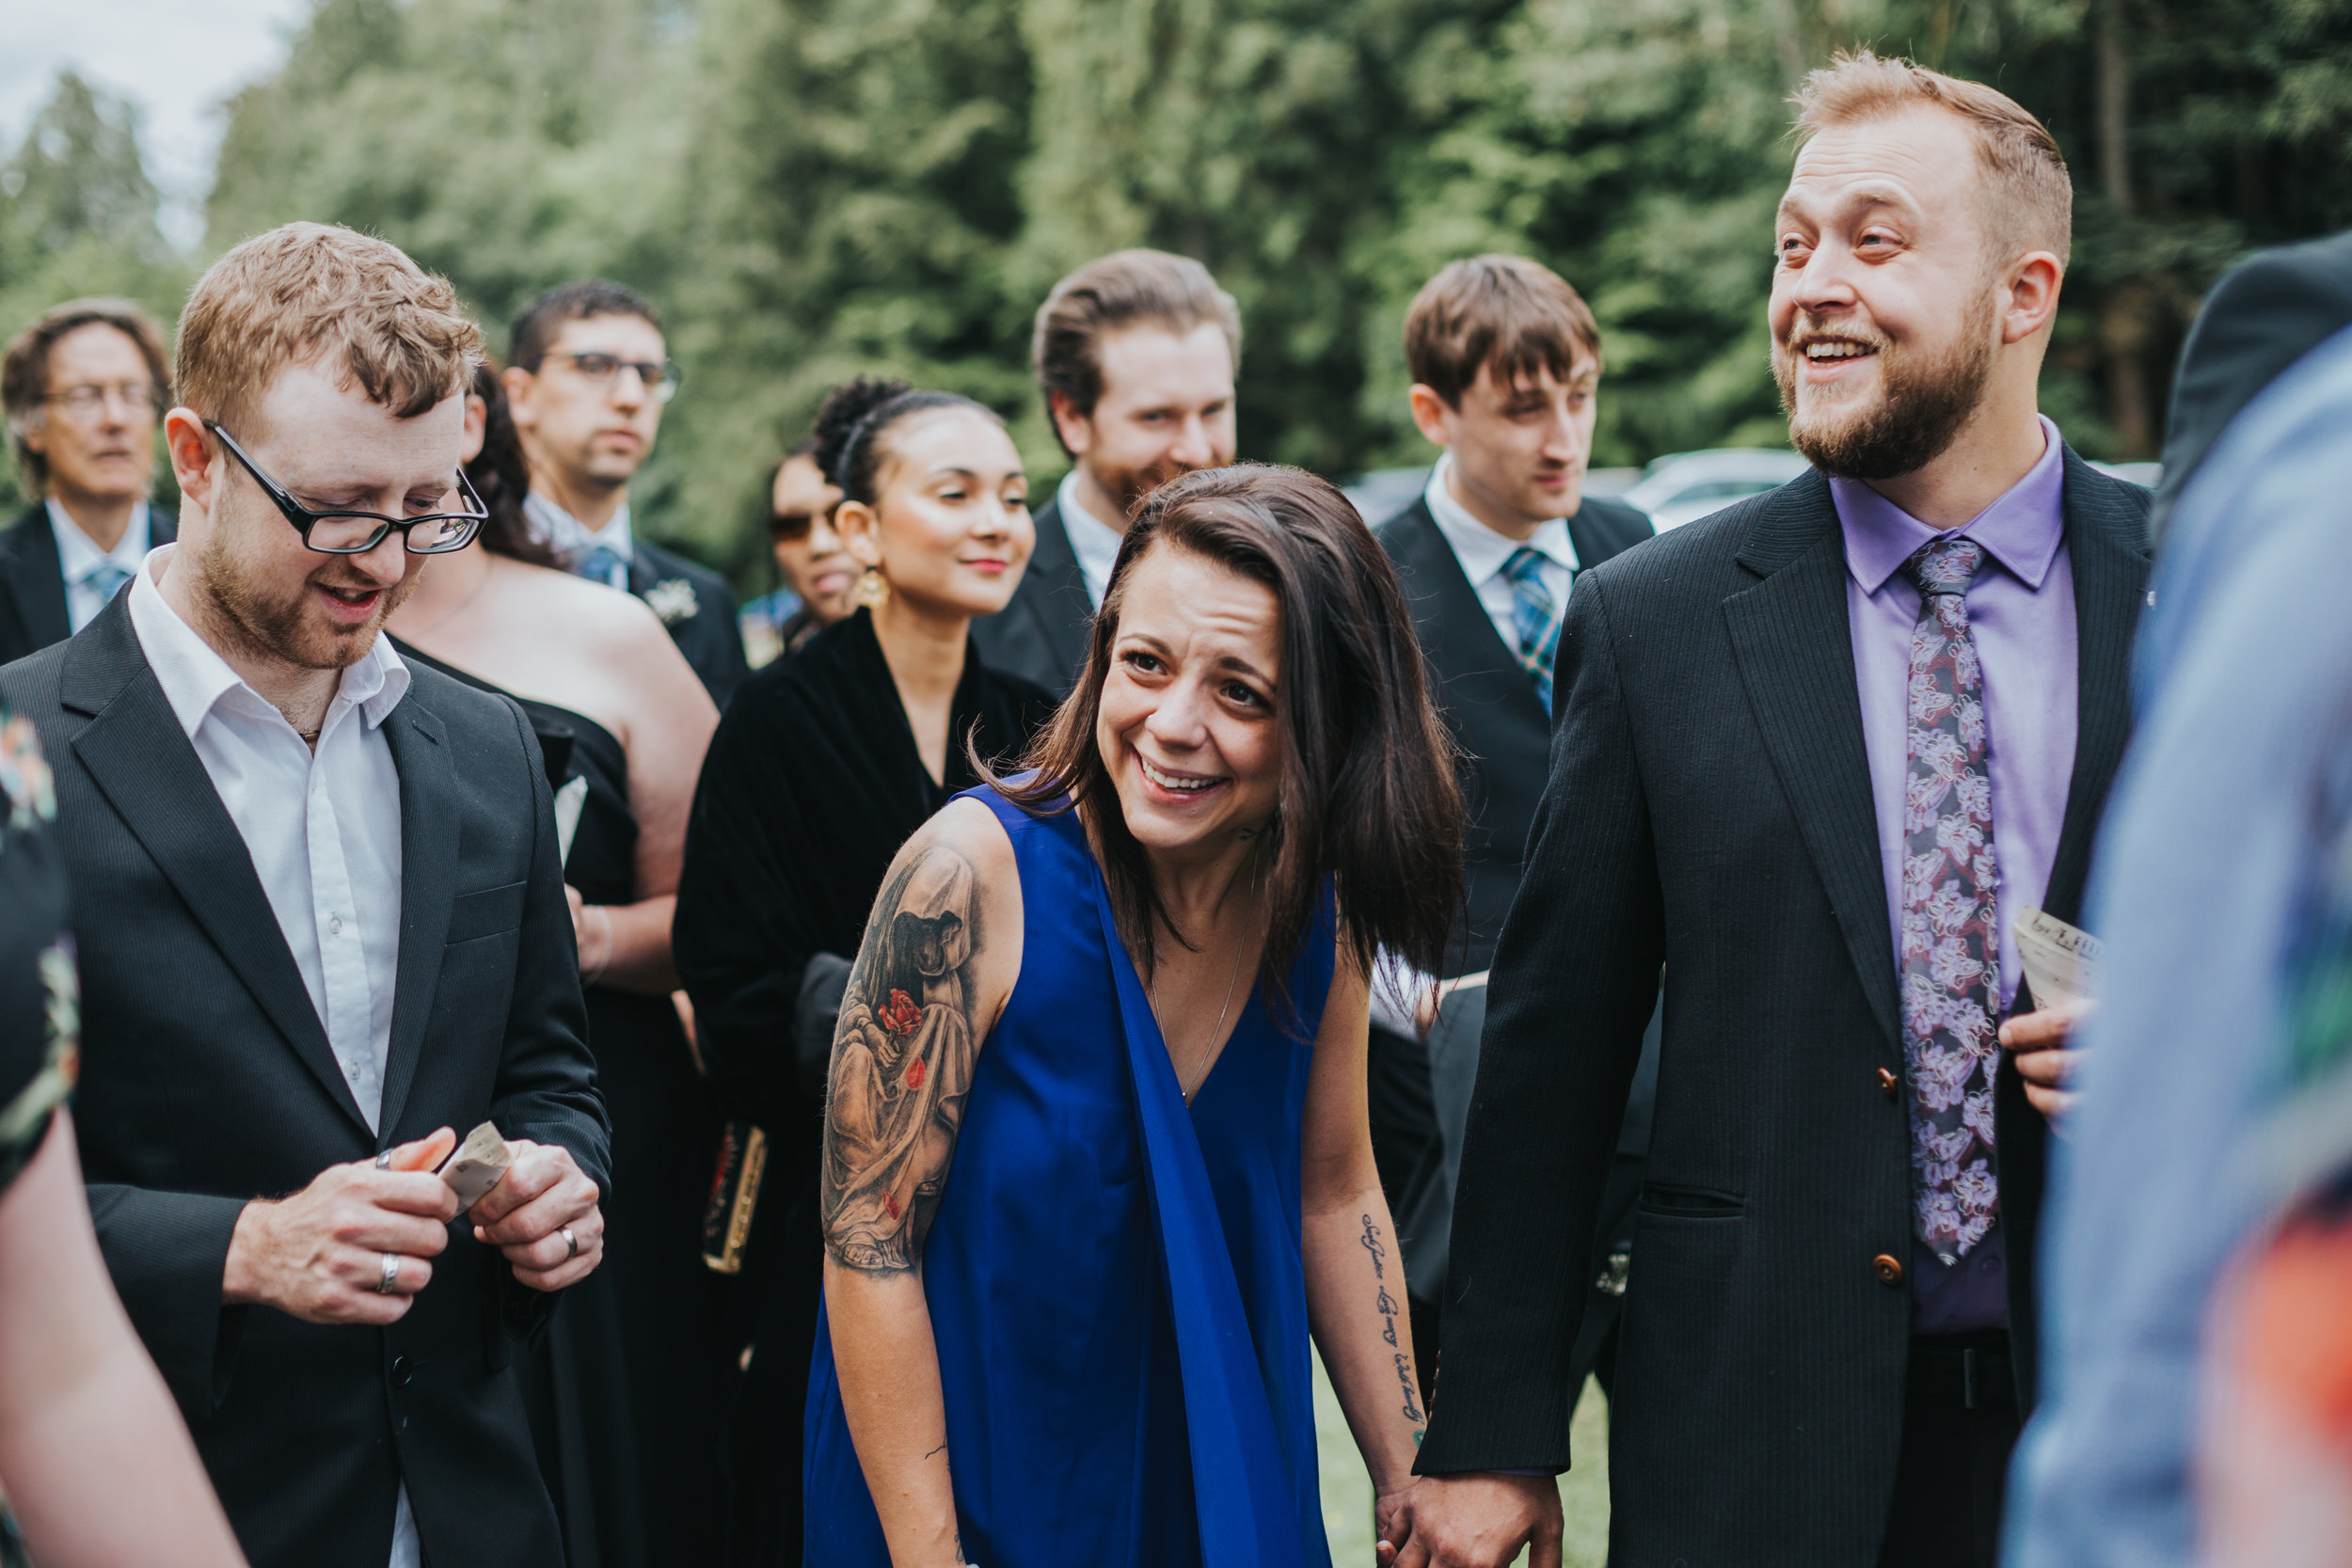 Wedding guests laugh together.